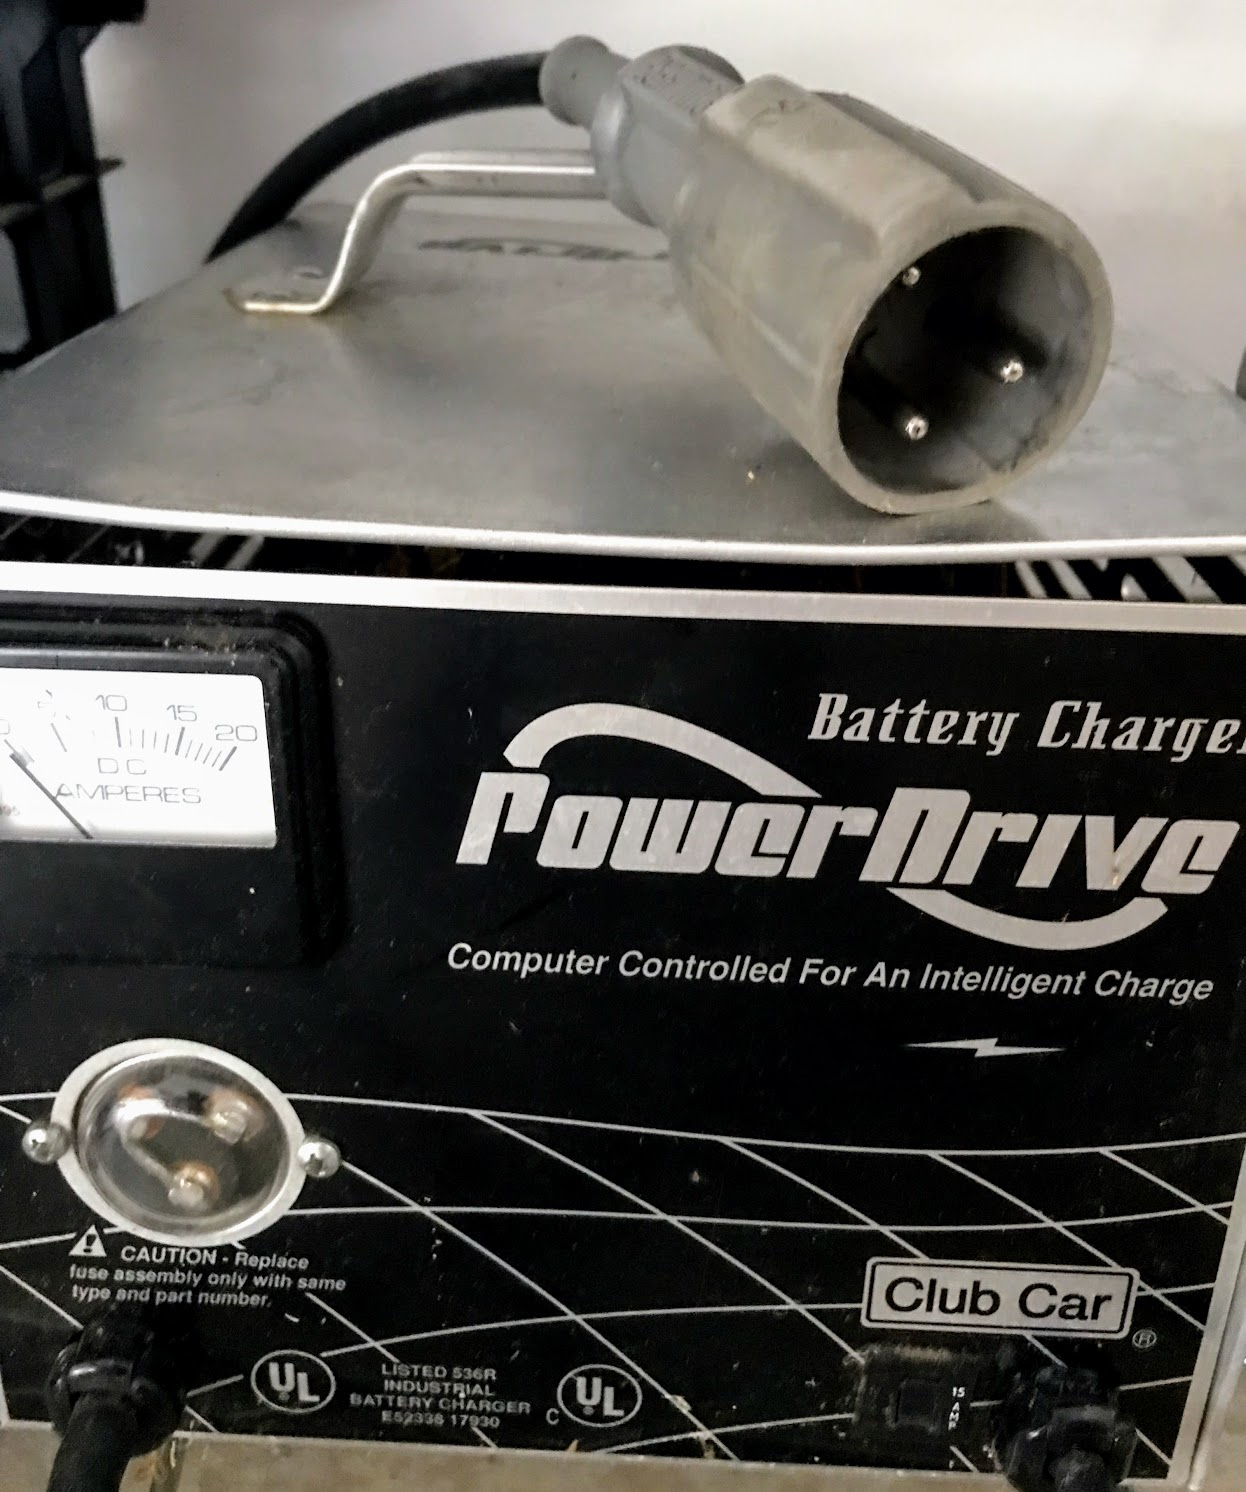 club car battery charger